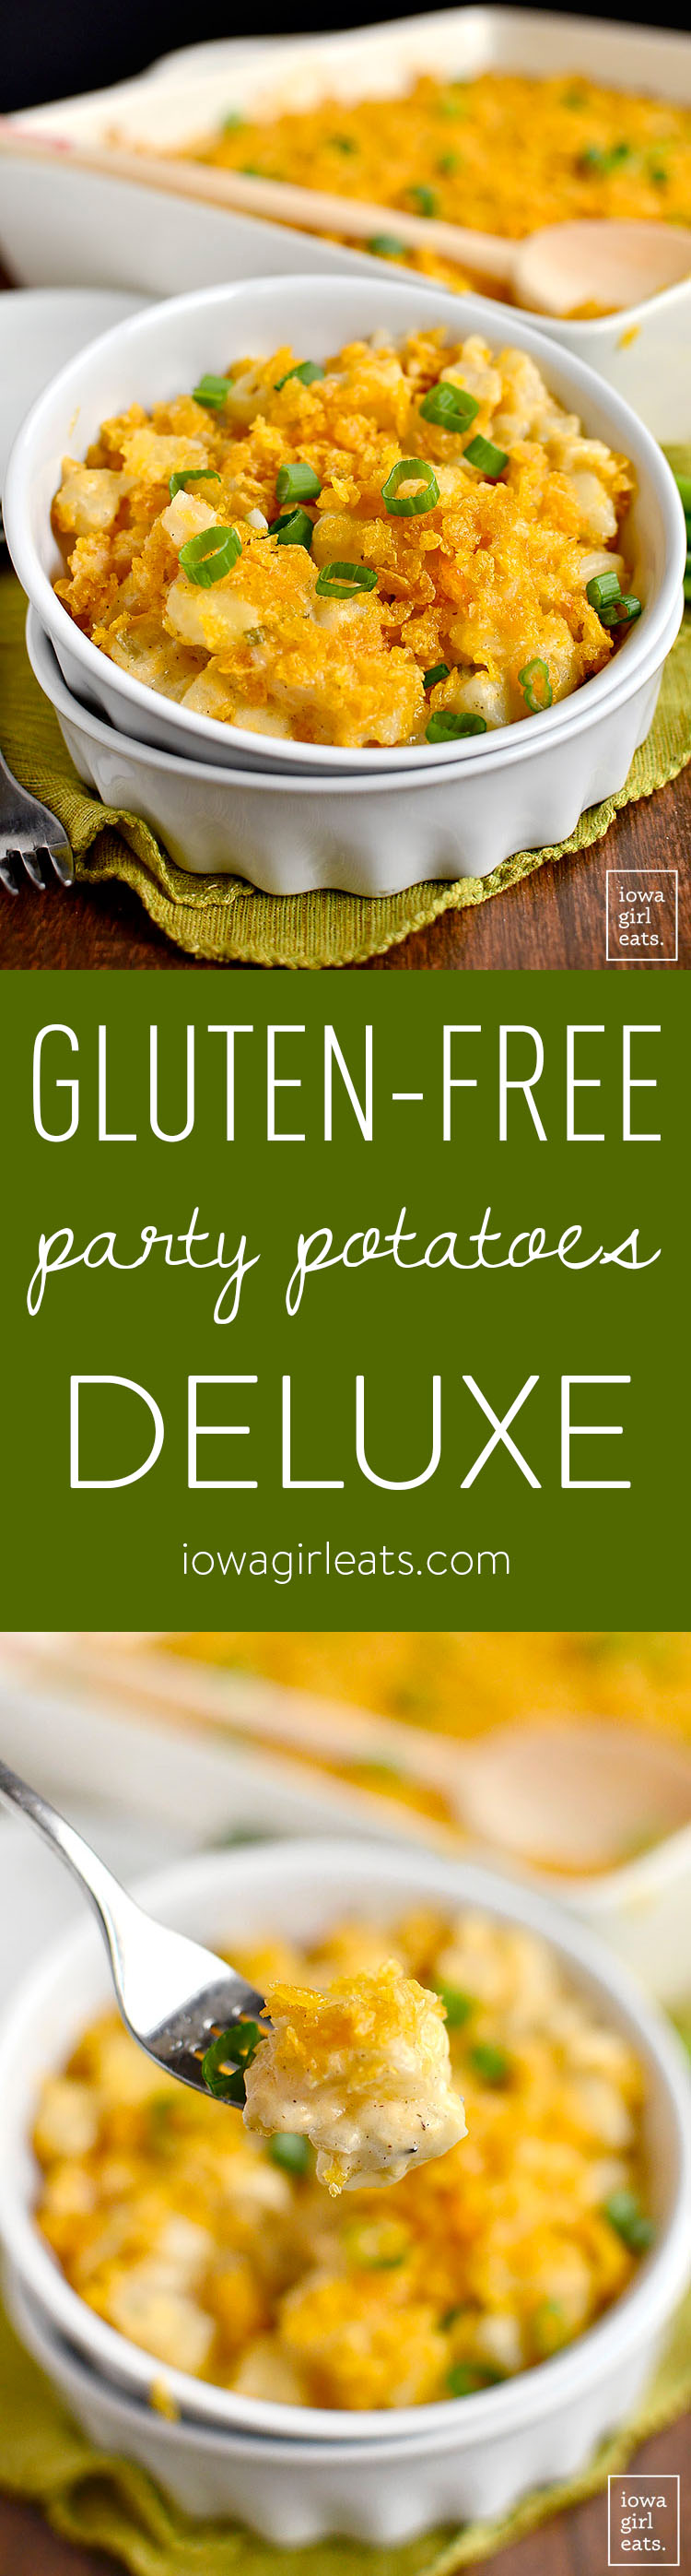 Gluten-Free Party Potatoes Deluxe has all the decadent, craveable flavor as the original, but is completely gluten-free! | iowagirleats.com